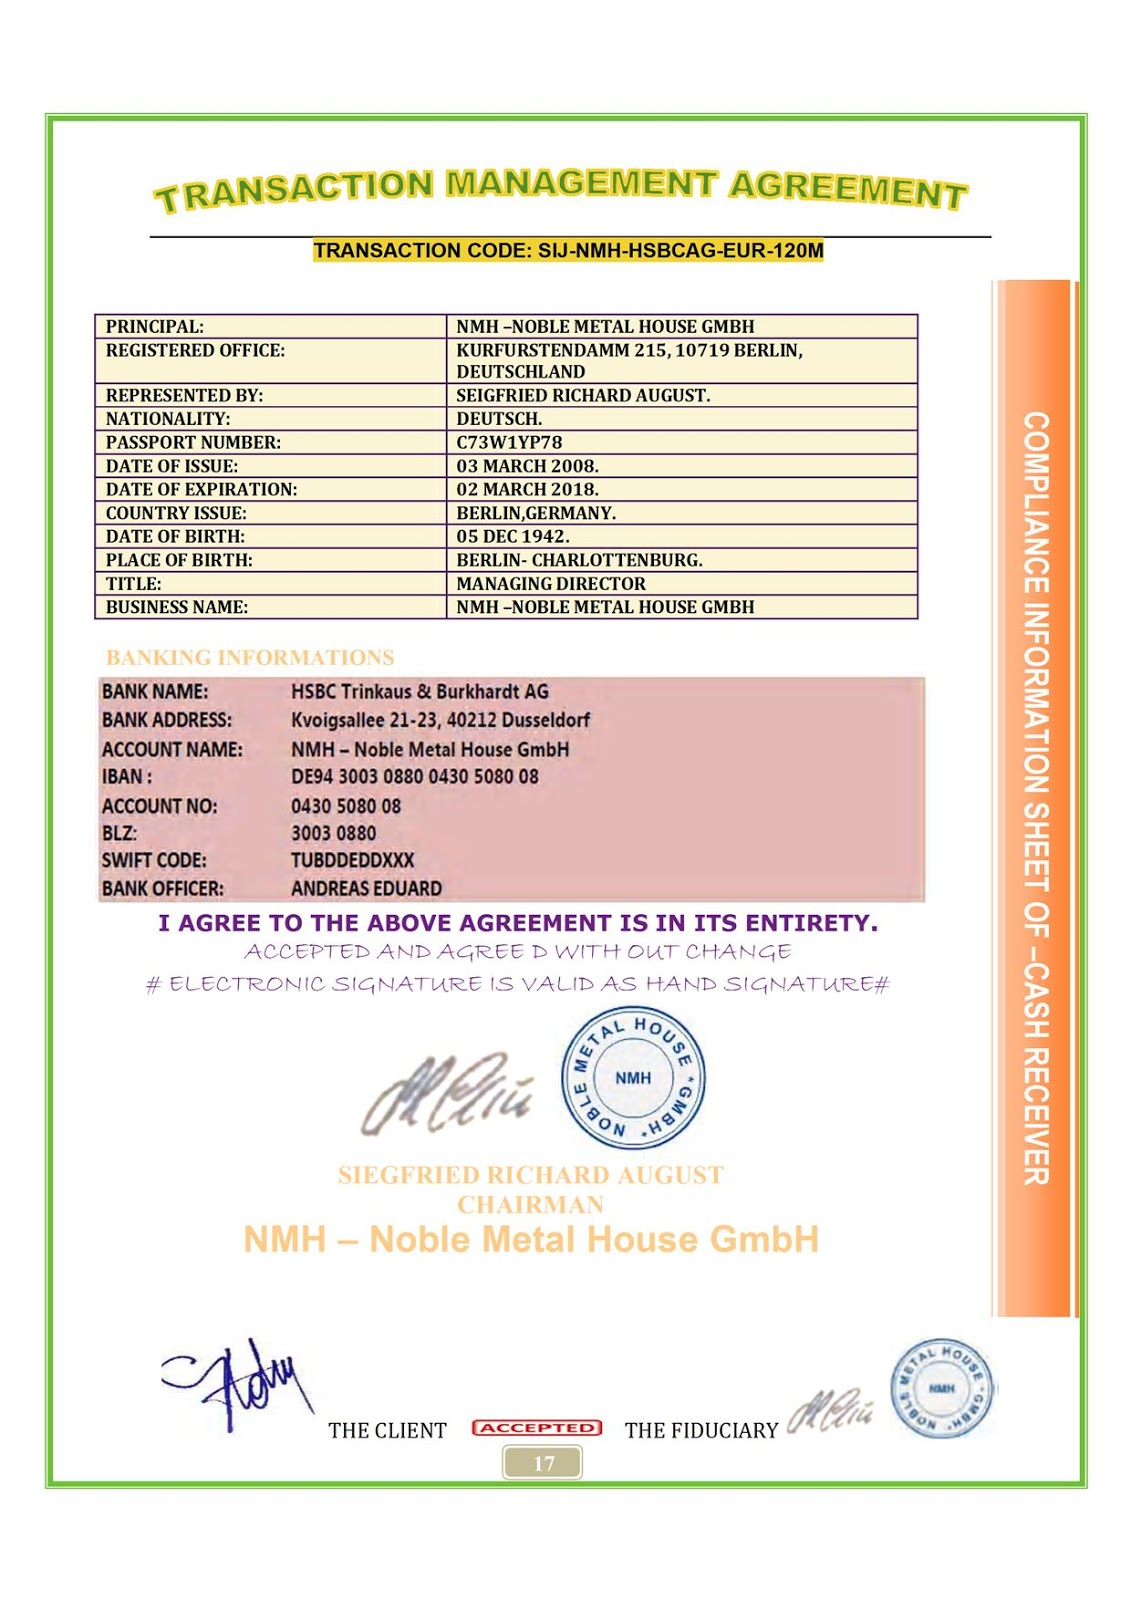 NOBLE METAL HOUSE INVLOVED IN FINANCIAL CRIME TOGETHER WITH